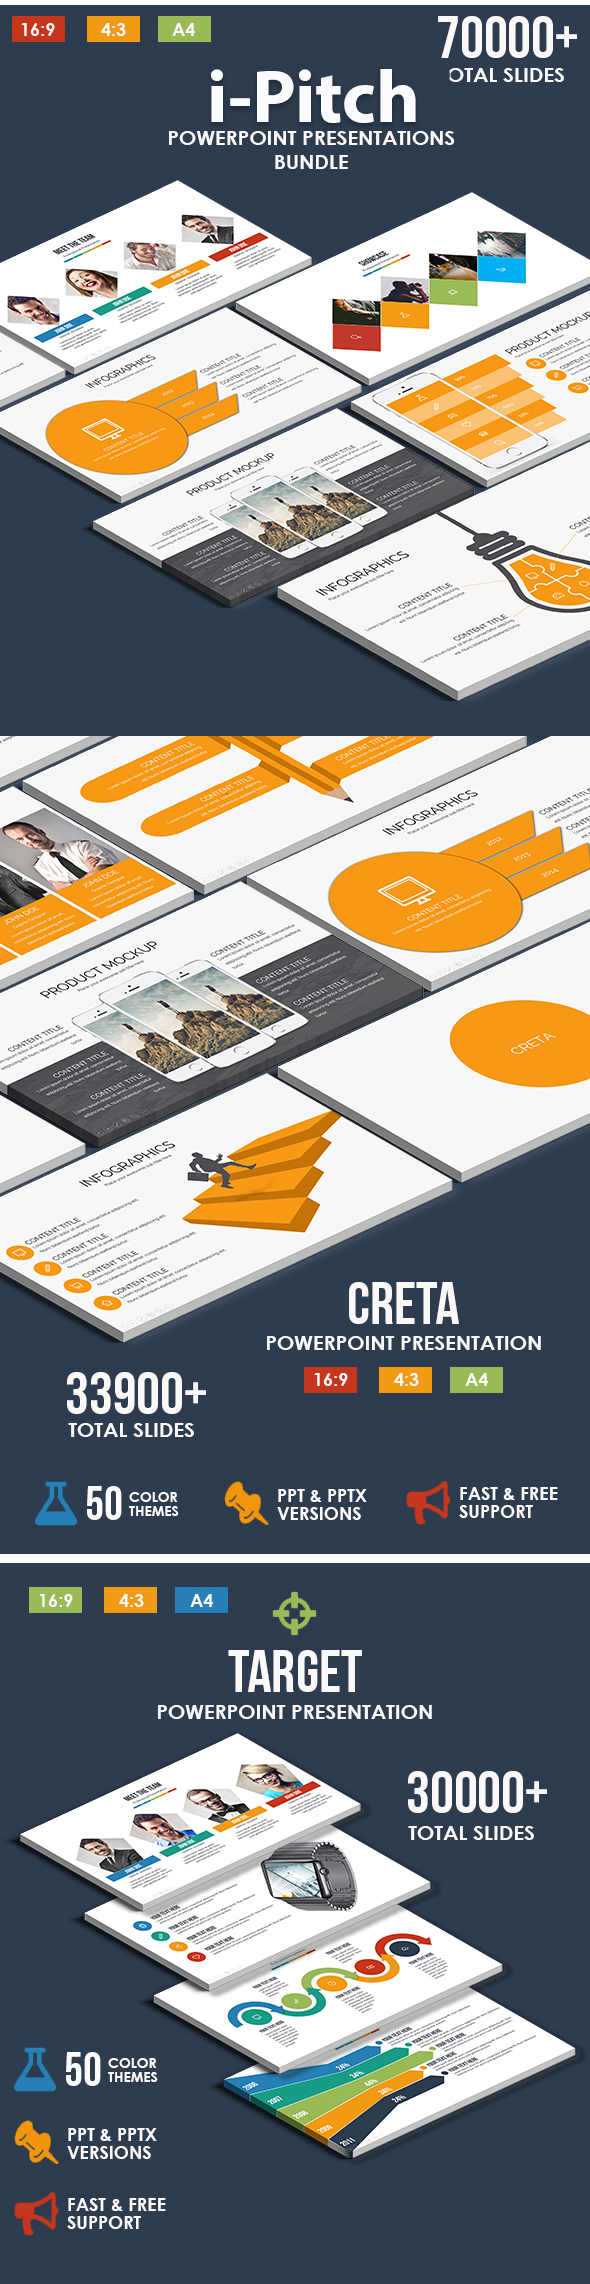 i-Pitch Powerpoint Templates Bundle - Business PowerPoint Templates